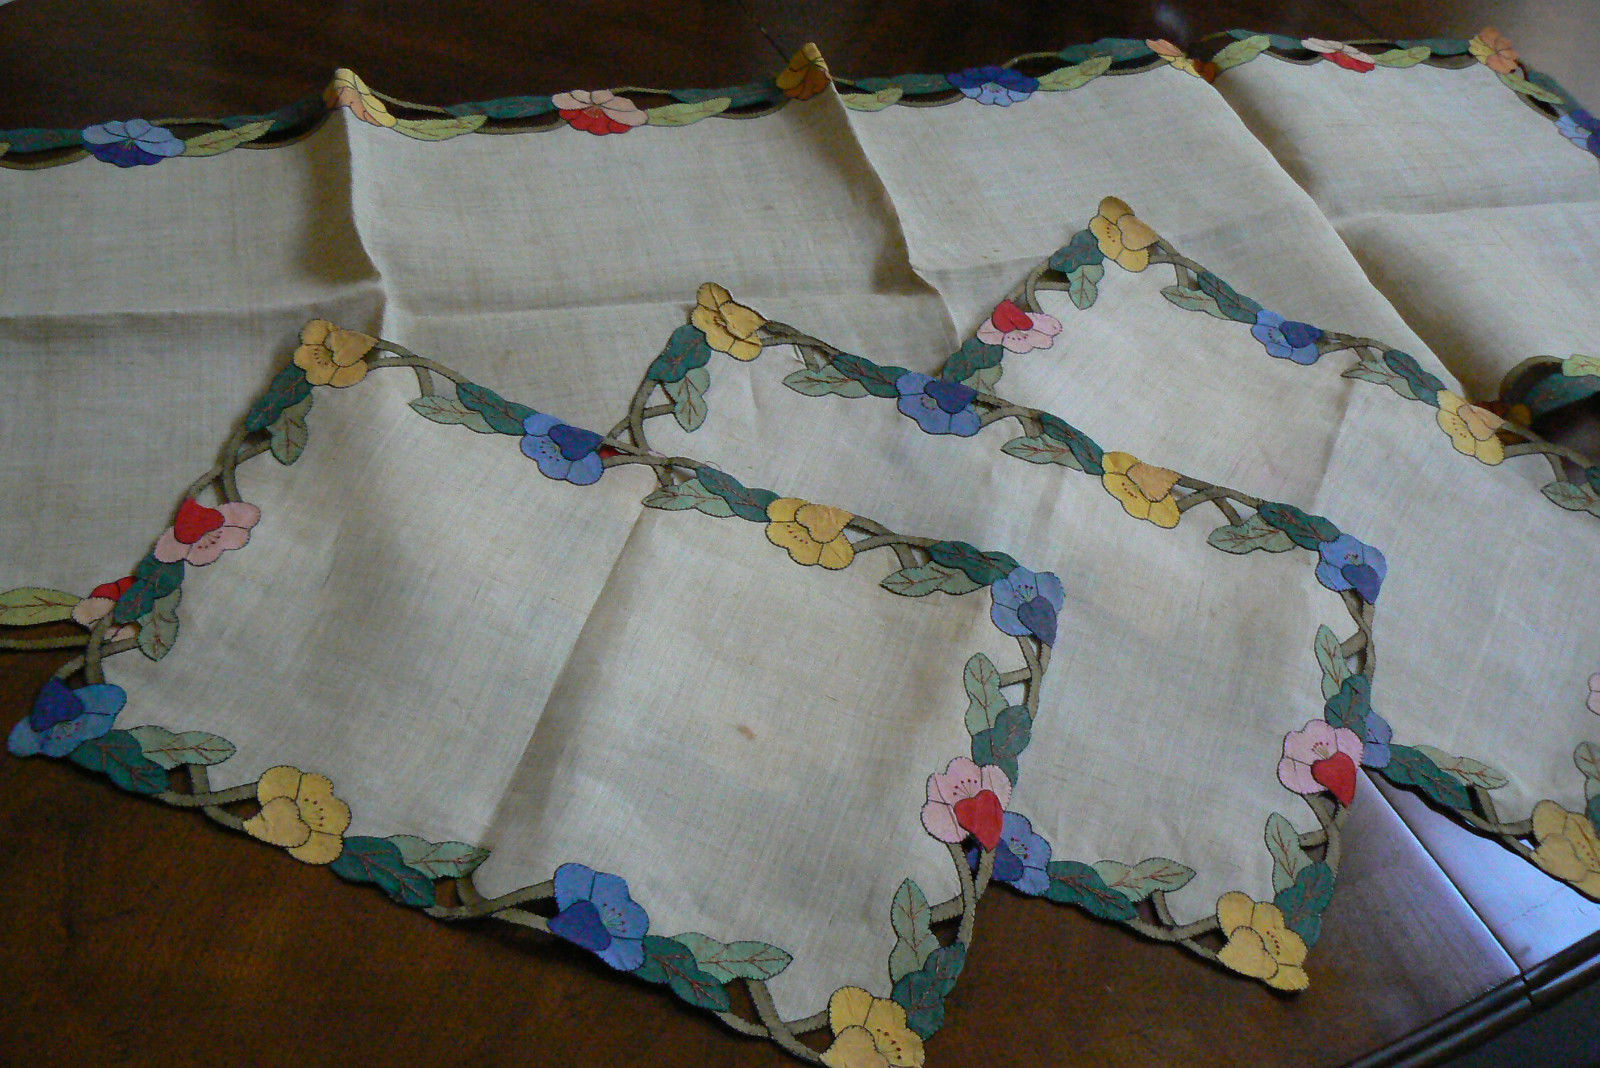 VTG Set of 3 Placemats & Table runner applique Embroidery Cutout Floral Brown - $75.00